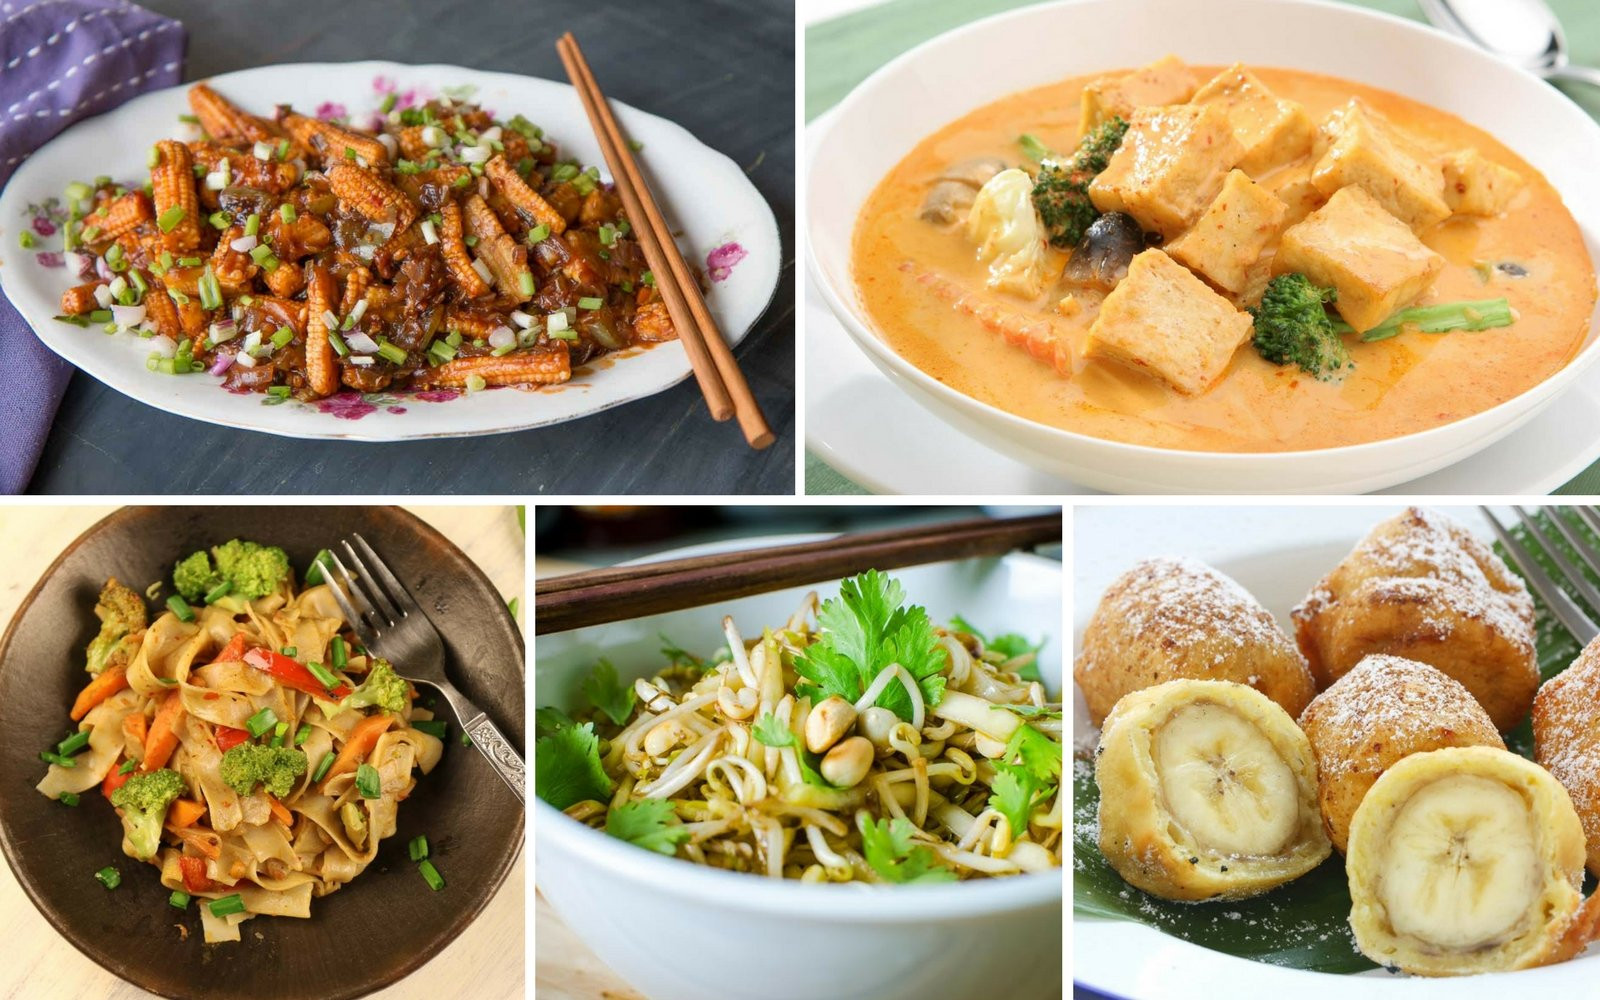 Asian Dinner Recipe  3 Course Meal Asian Styled Dinner For Your Weekend by